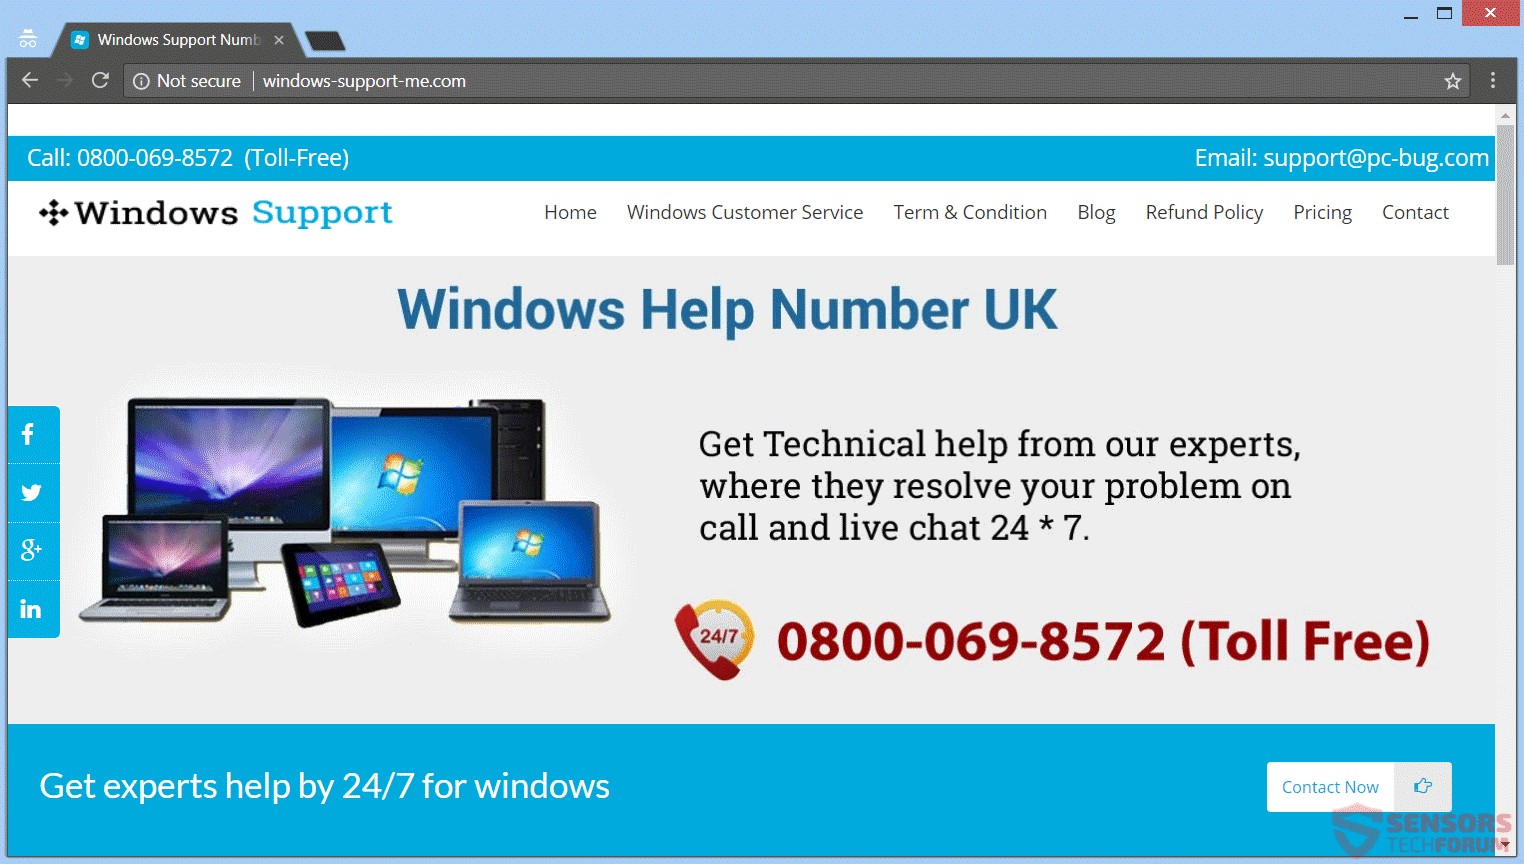 ... To Call A Microsoft Windows Helpline Number. If You Reside In Europe,  You Might End Up On This Landing Page Connected To The Same Scam And Web  Domain: